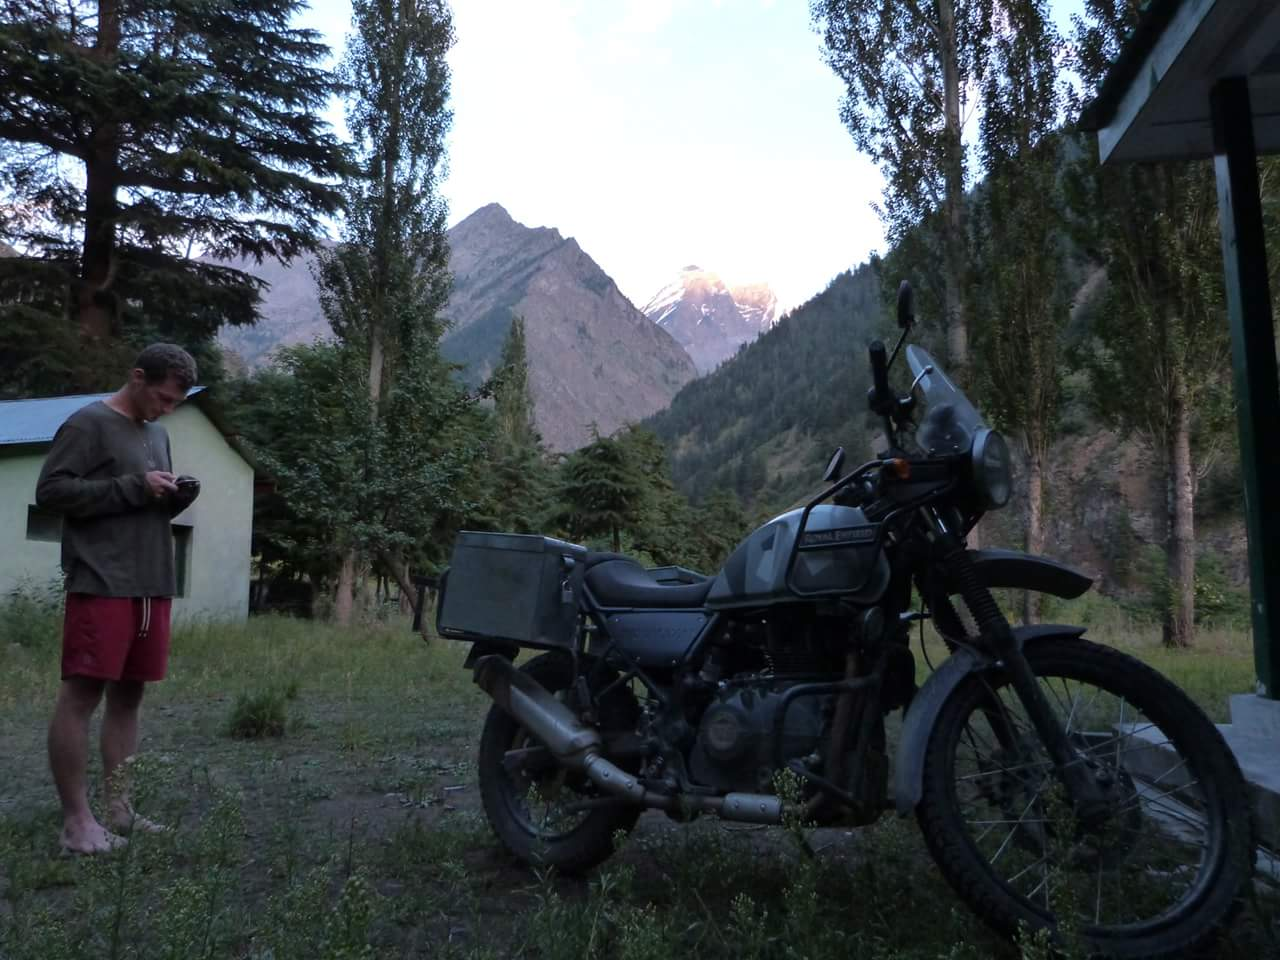 Royal Enfield Himalayan BS4 On Rent In Delhi